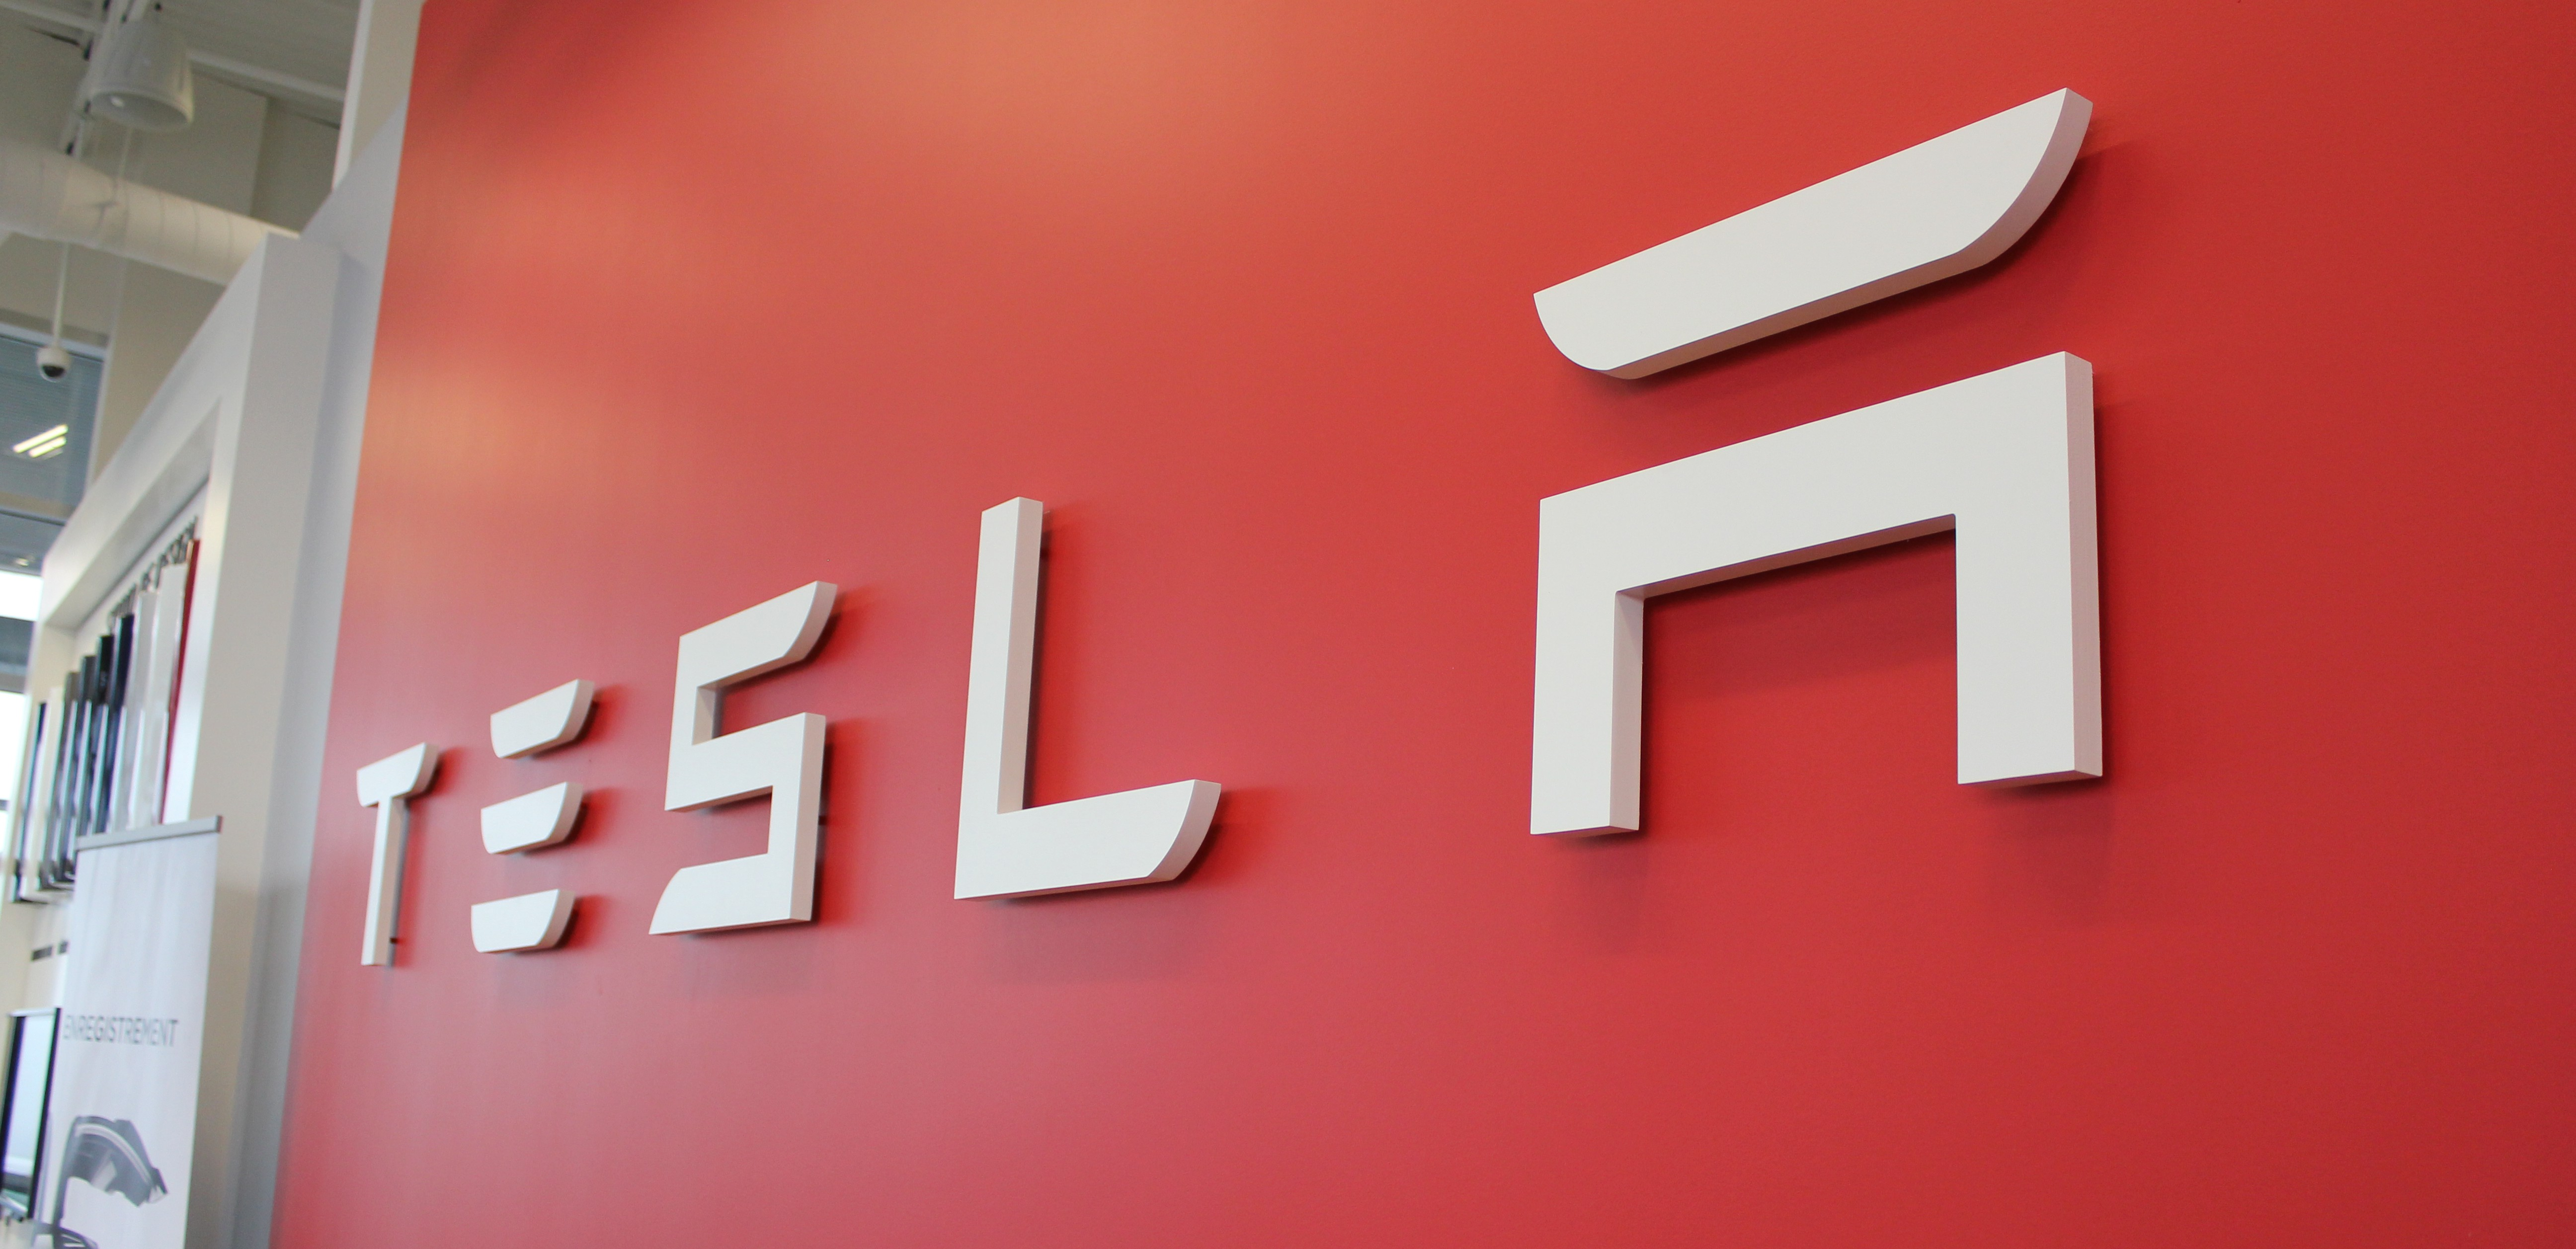 Tesla (TSLA) gets new $800 price target based on its ability to execute - Electrek